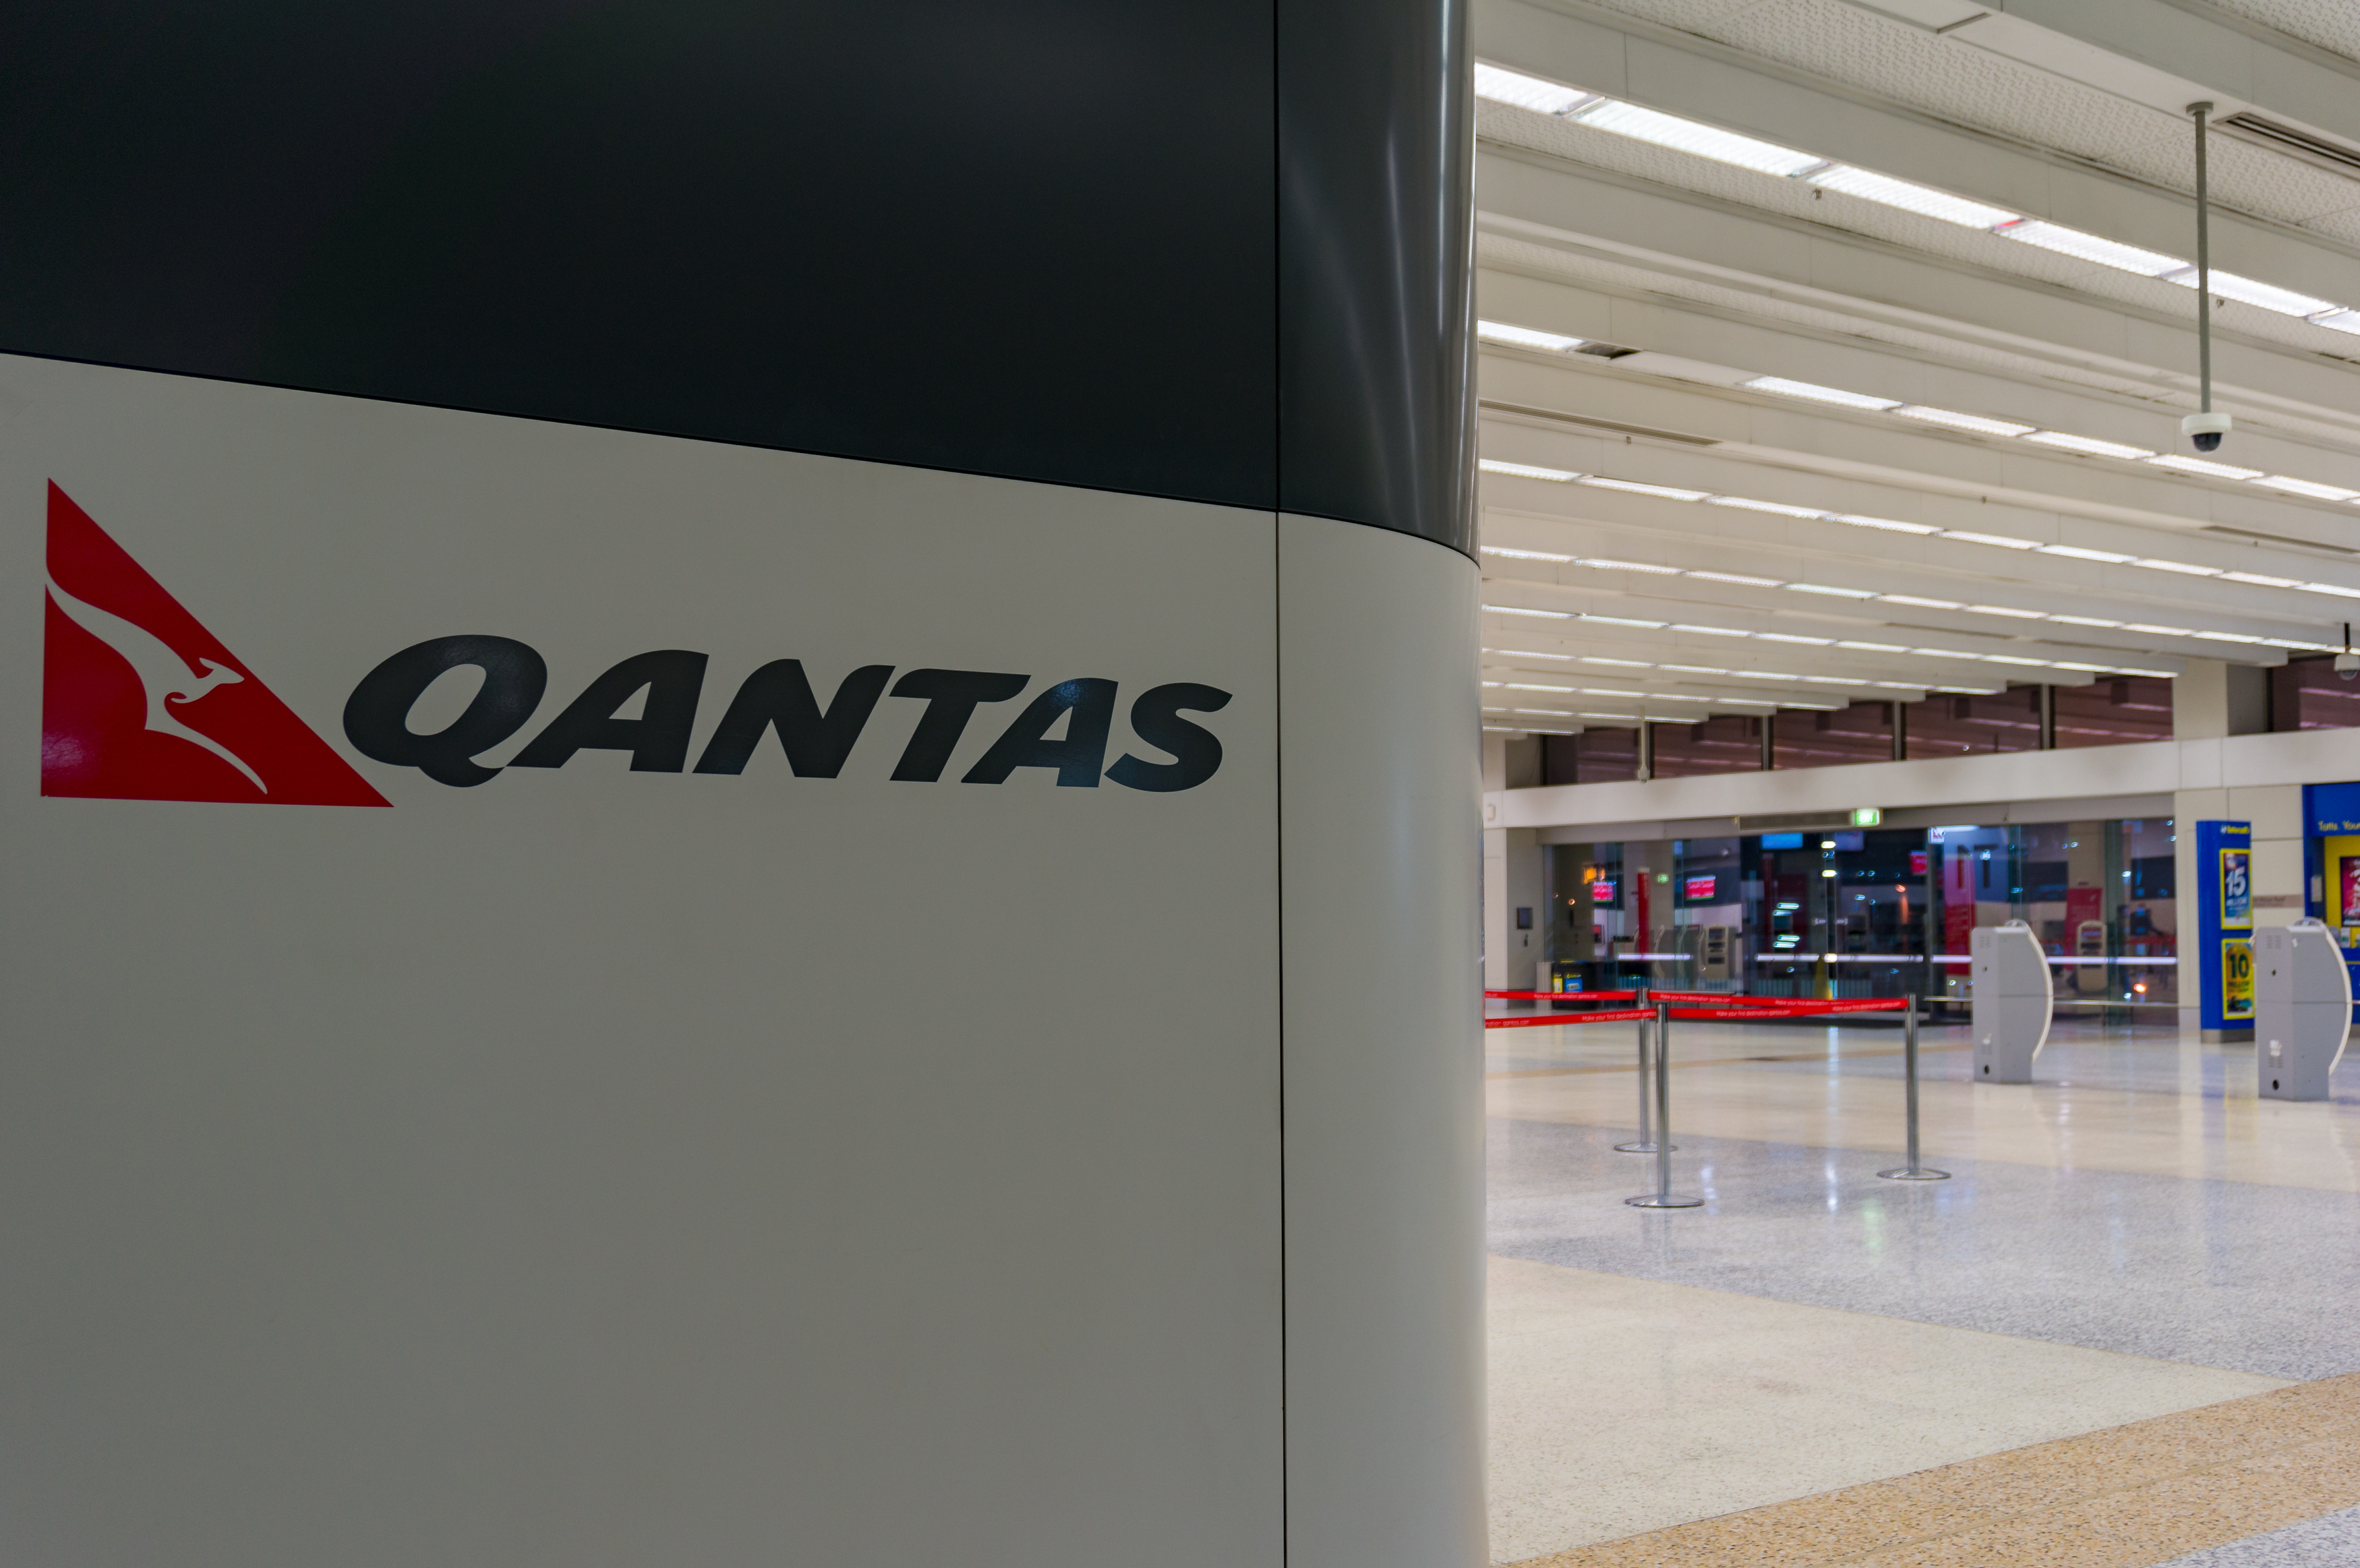 Qantas airport staff